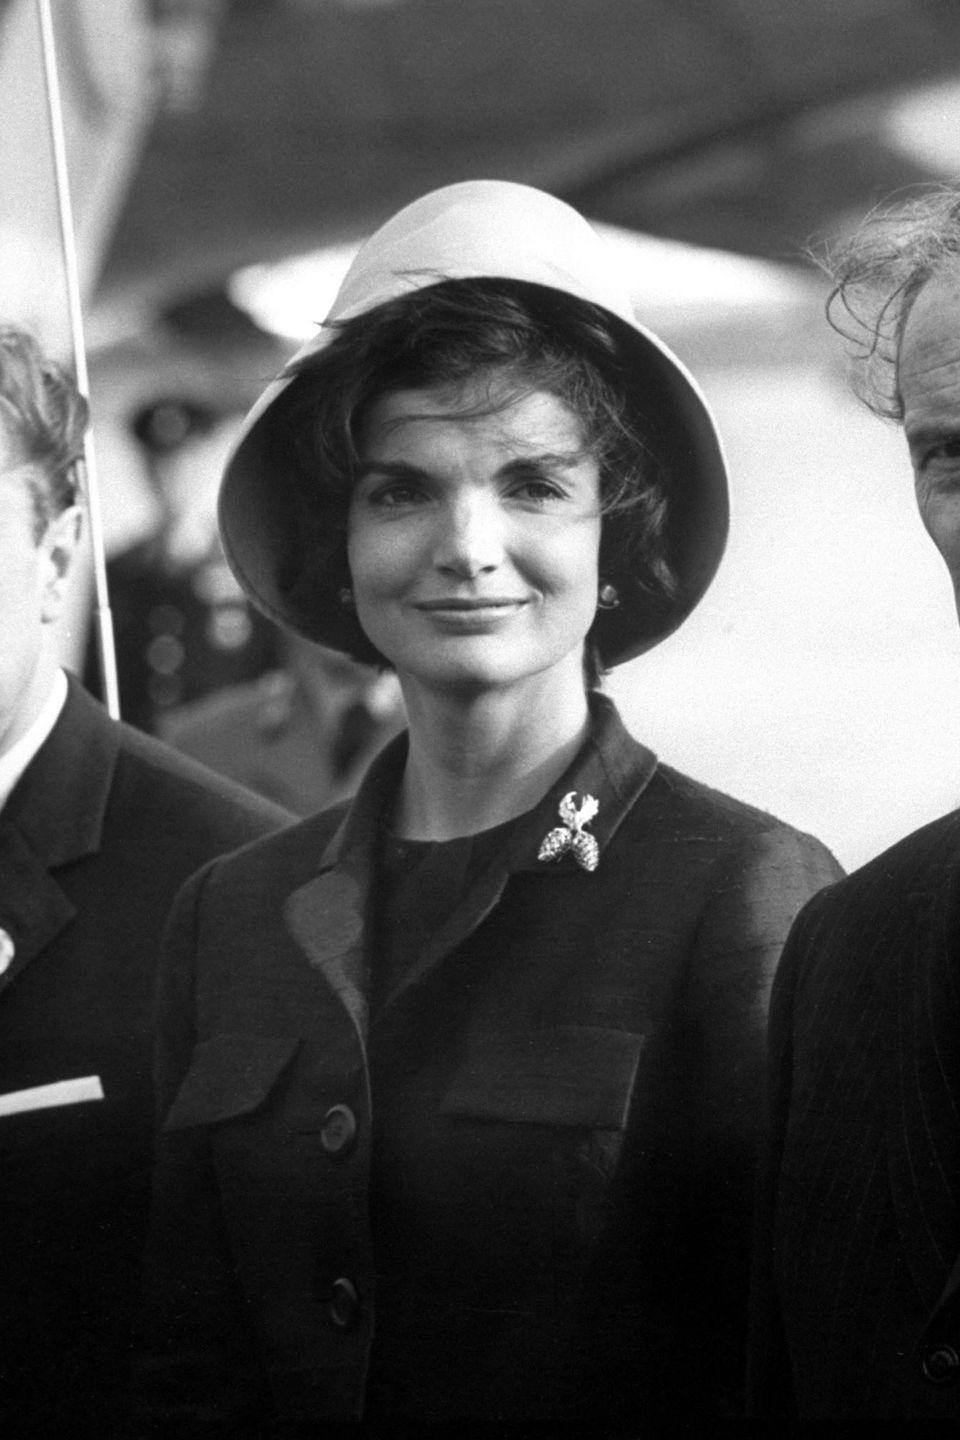 <p>Always the lady, here she is pictured wearing a Chez Ninon suit during a tour in Vienna in 1961. A contrasting hat and shimmering broach serve as standout accessories.</p>